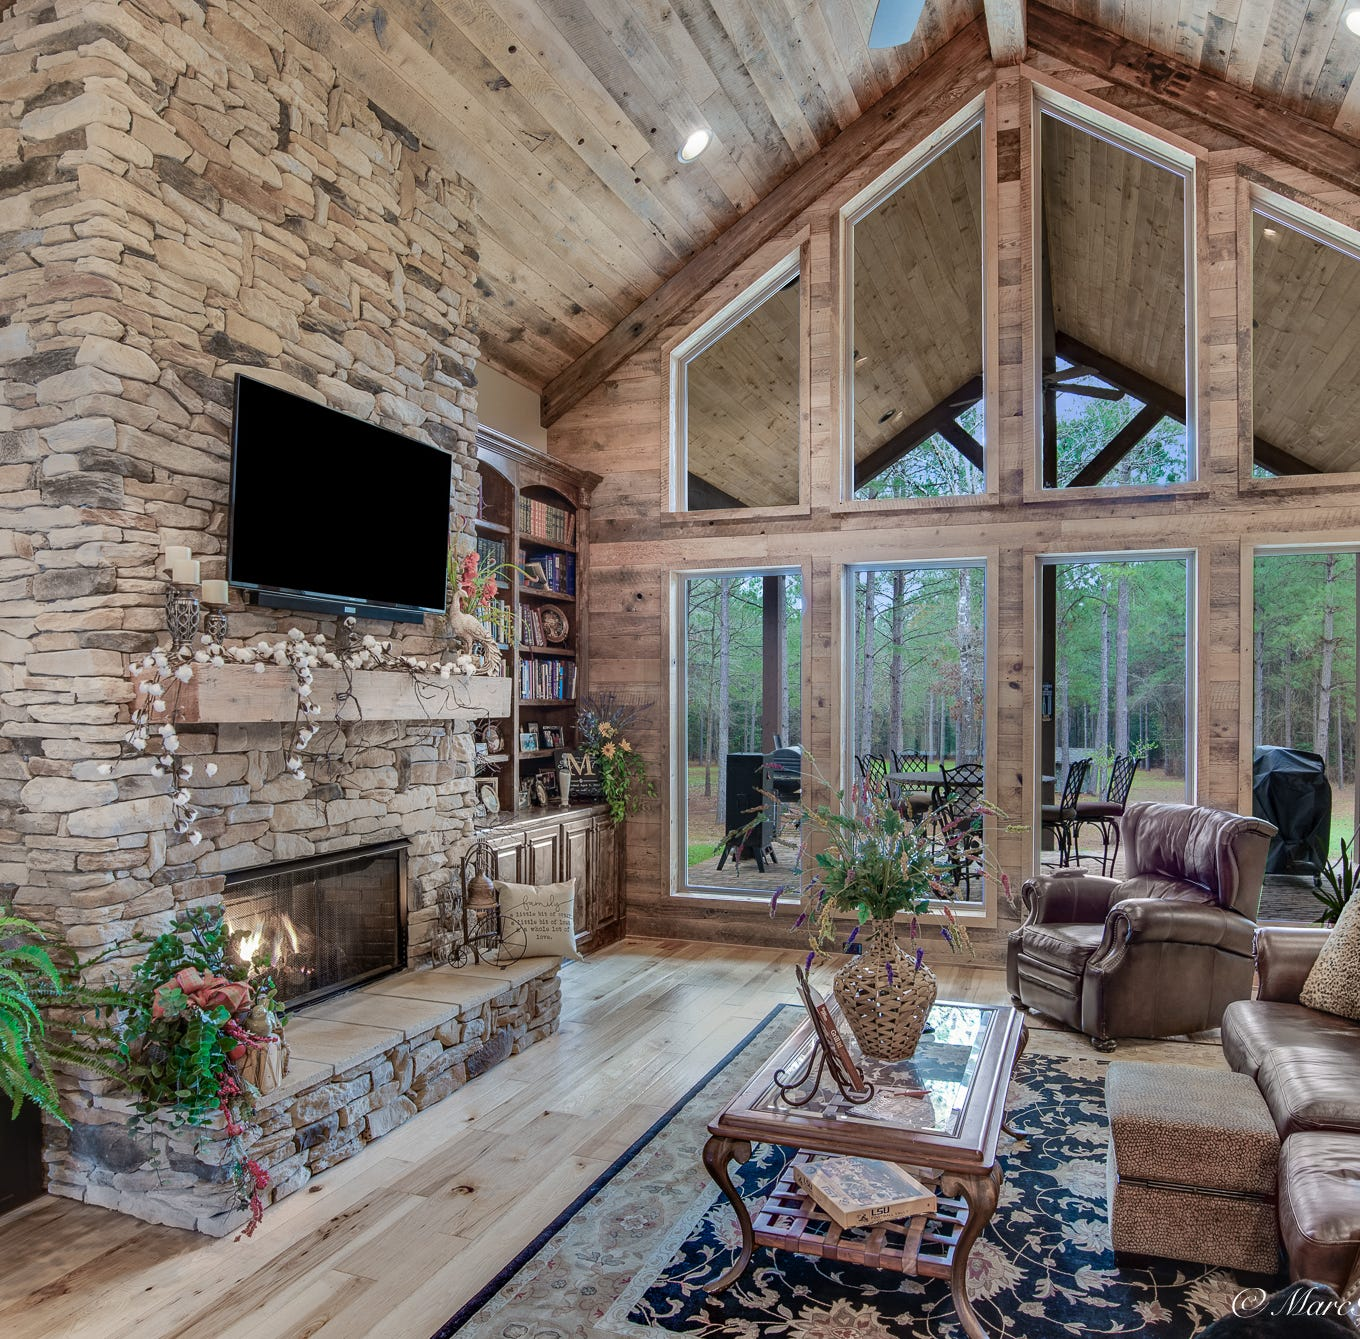 Benton lodge takes inspiration from Colorado ski retreat